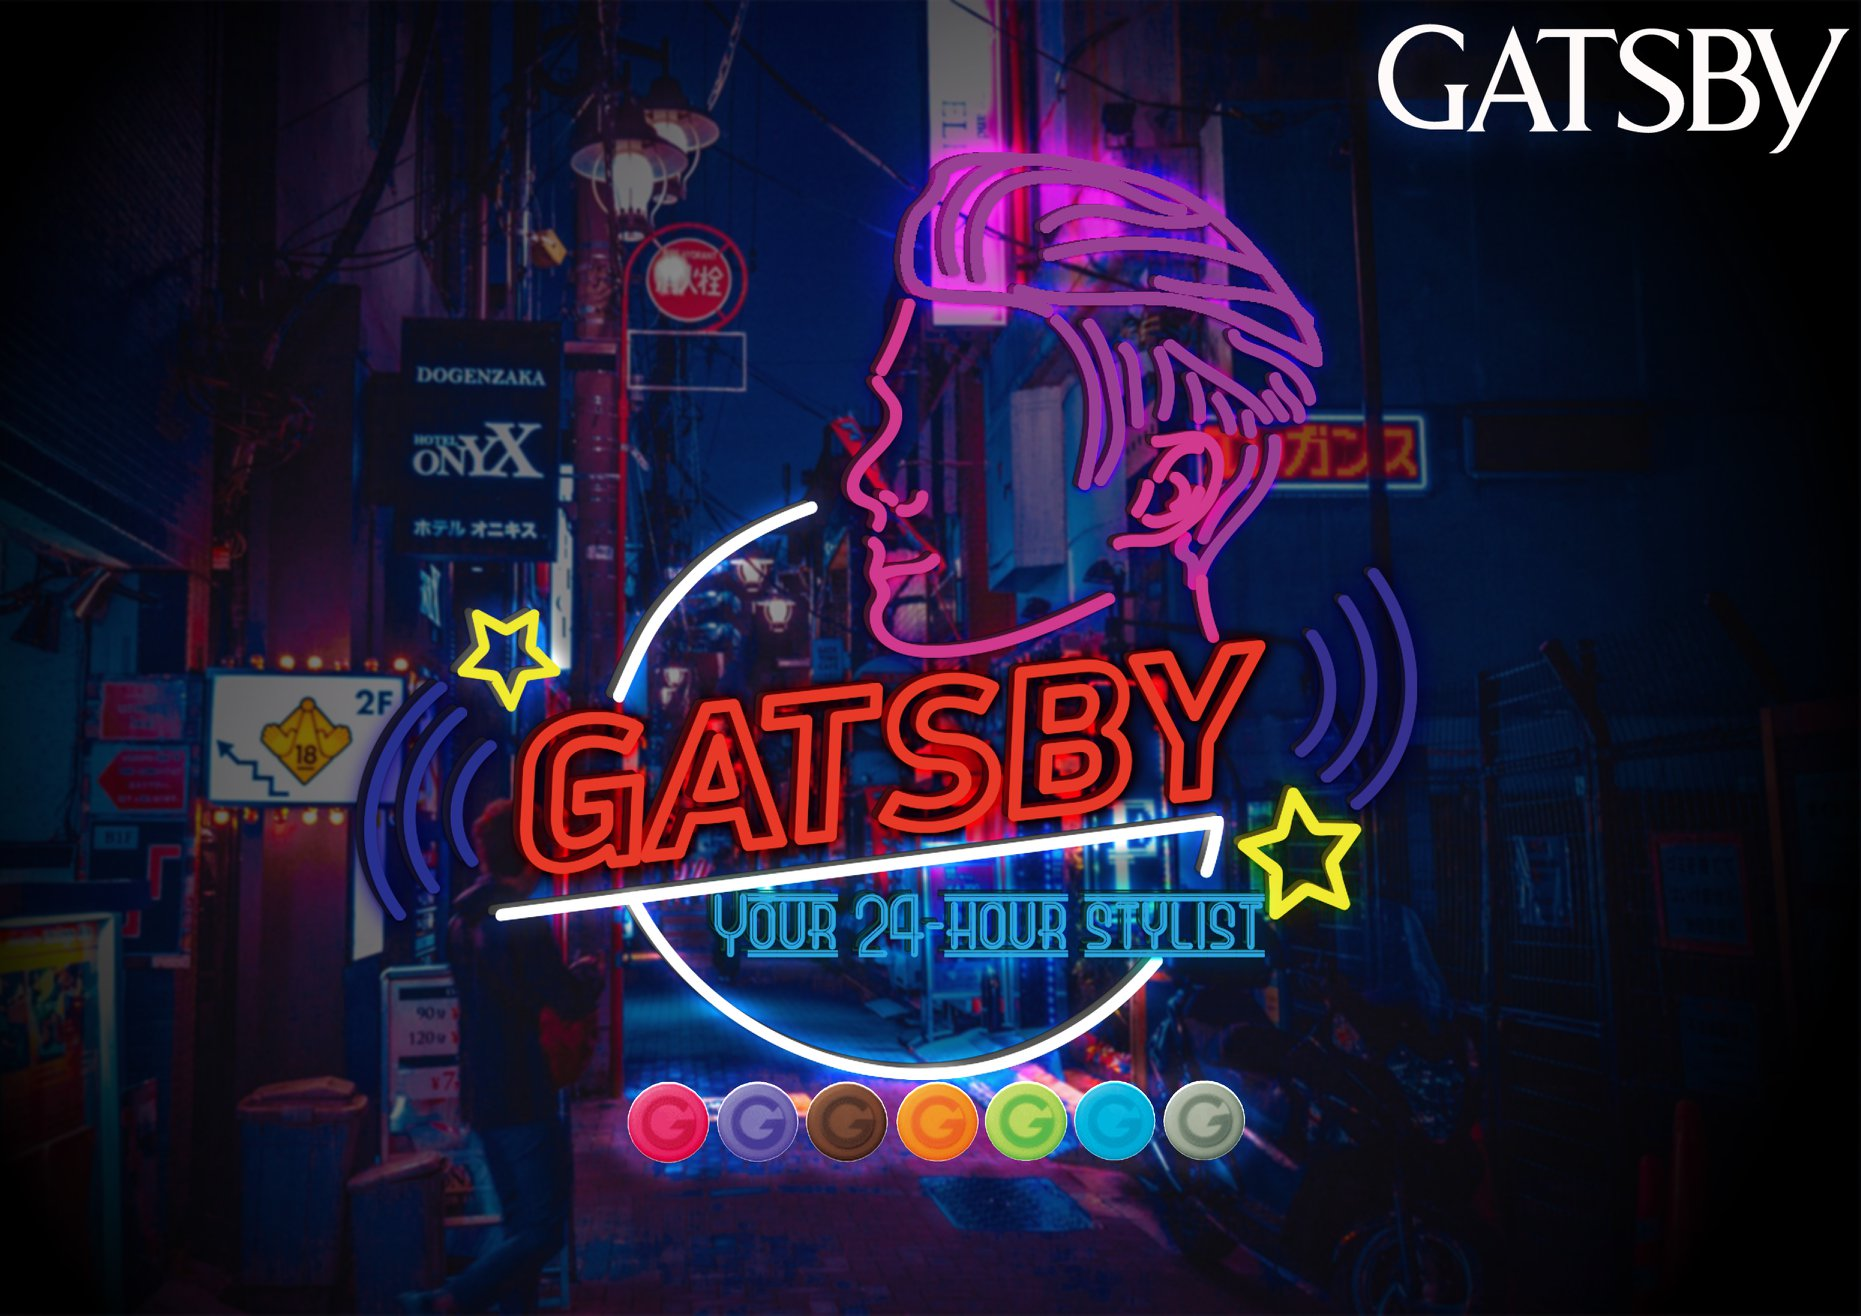 「12th GATSBY CREATIVE AWARDS FINAL」ART部門作品画像